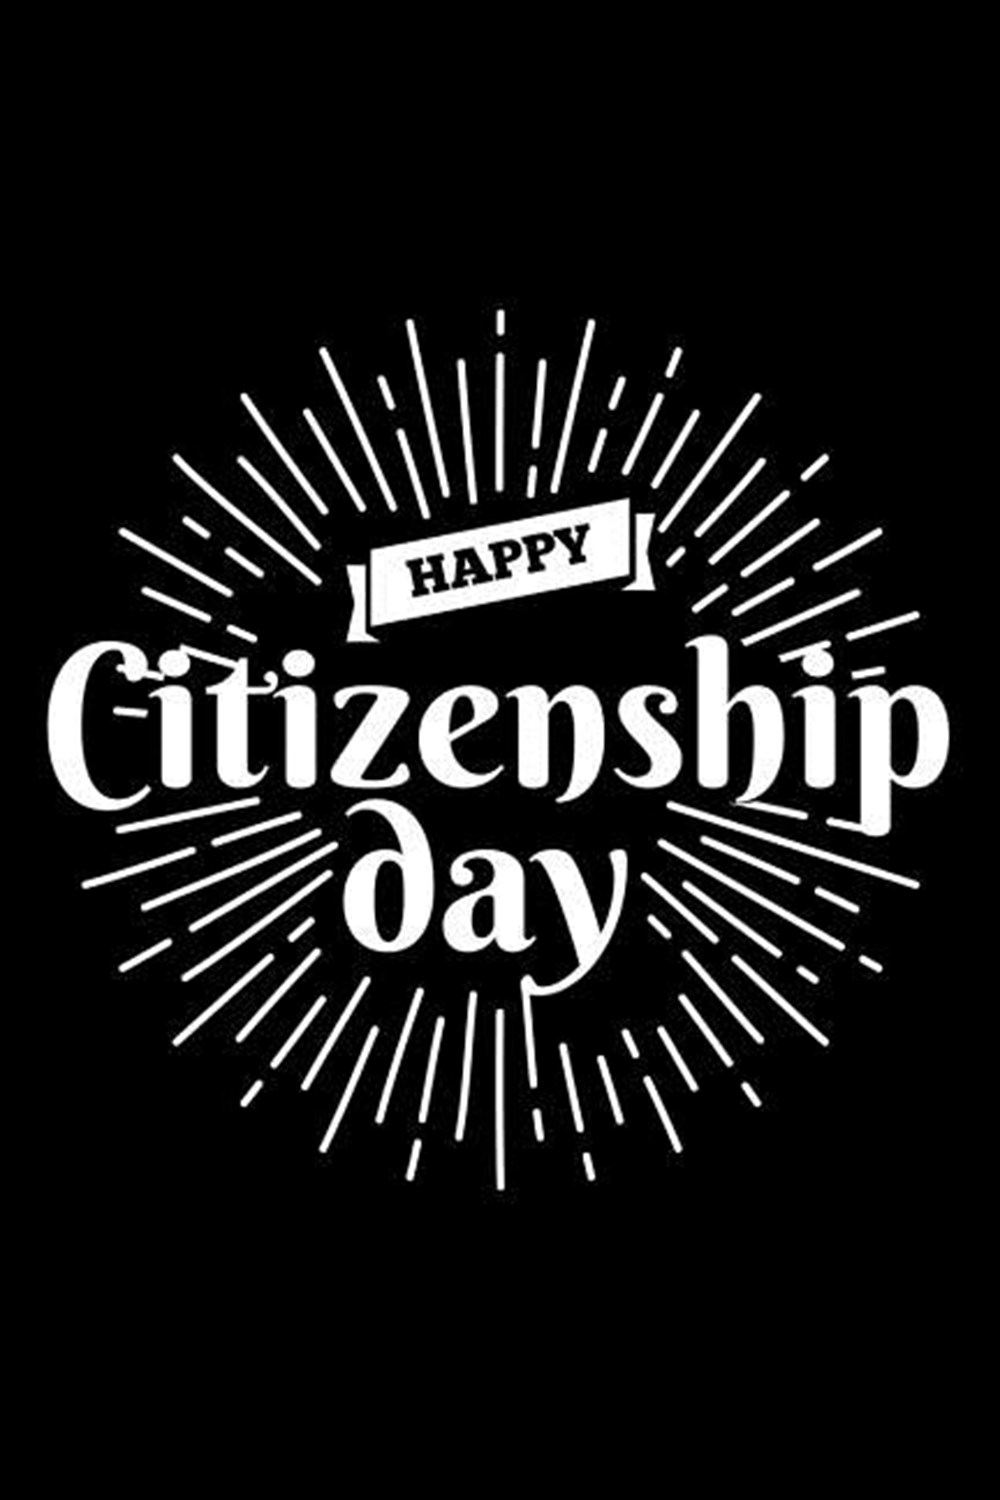 Happy Citizenship Day Blank Paper Sketch Book - Artist Sketch Pad Journal for Sketching, Doodling, D